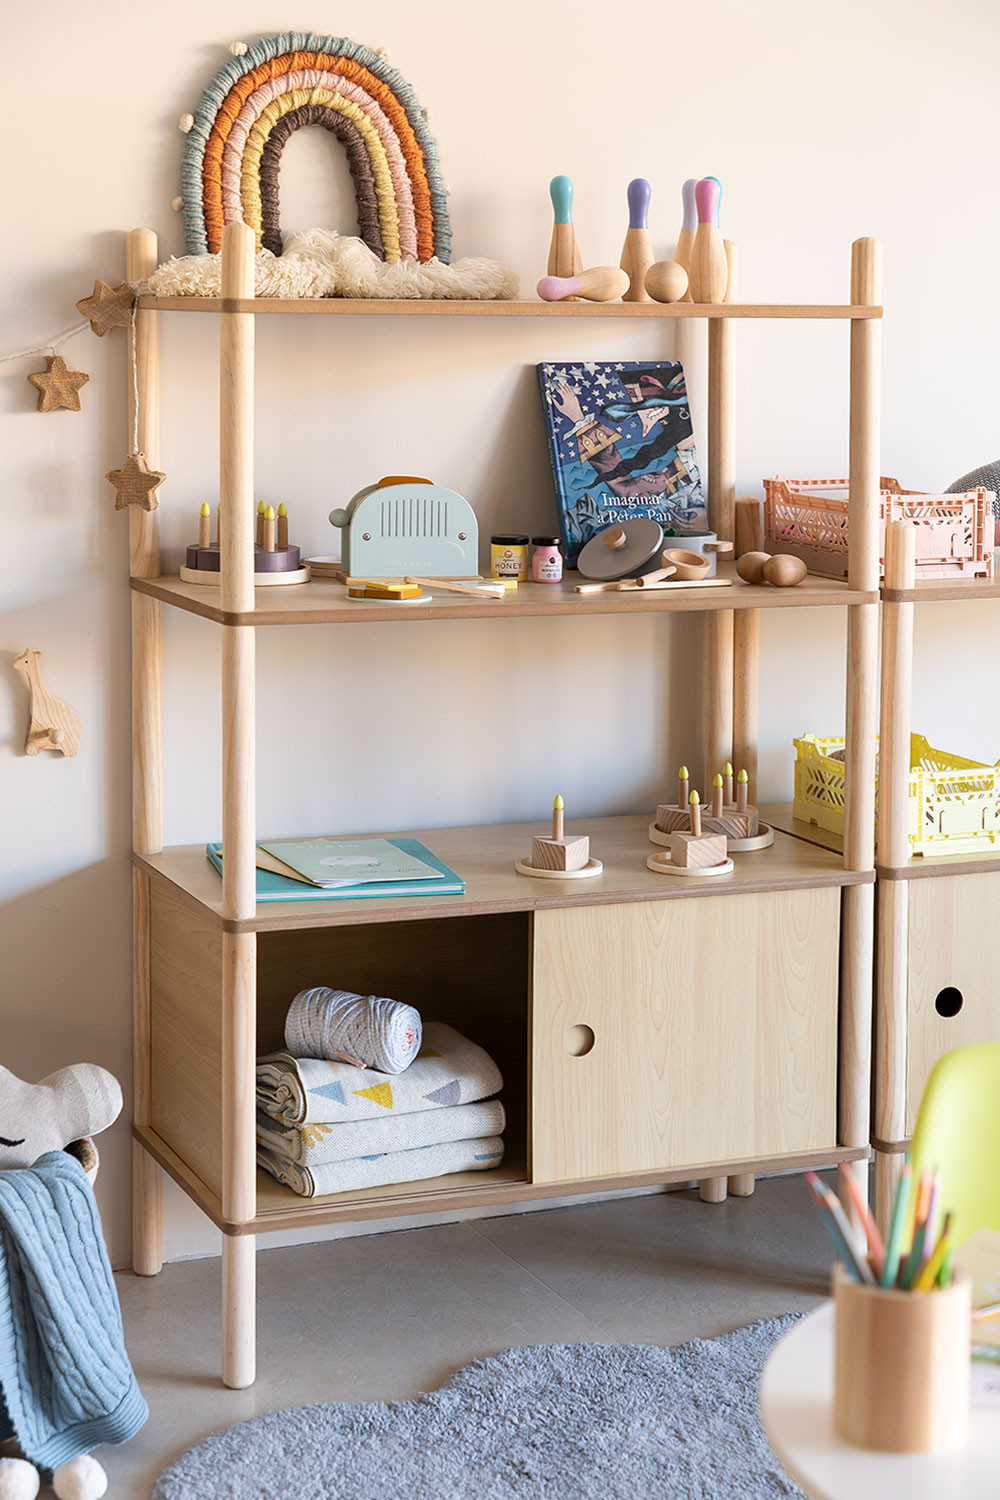 Kids Wooden Shelving with Storage & Shelves Tulia, gallery image 1